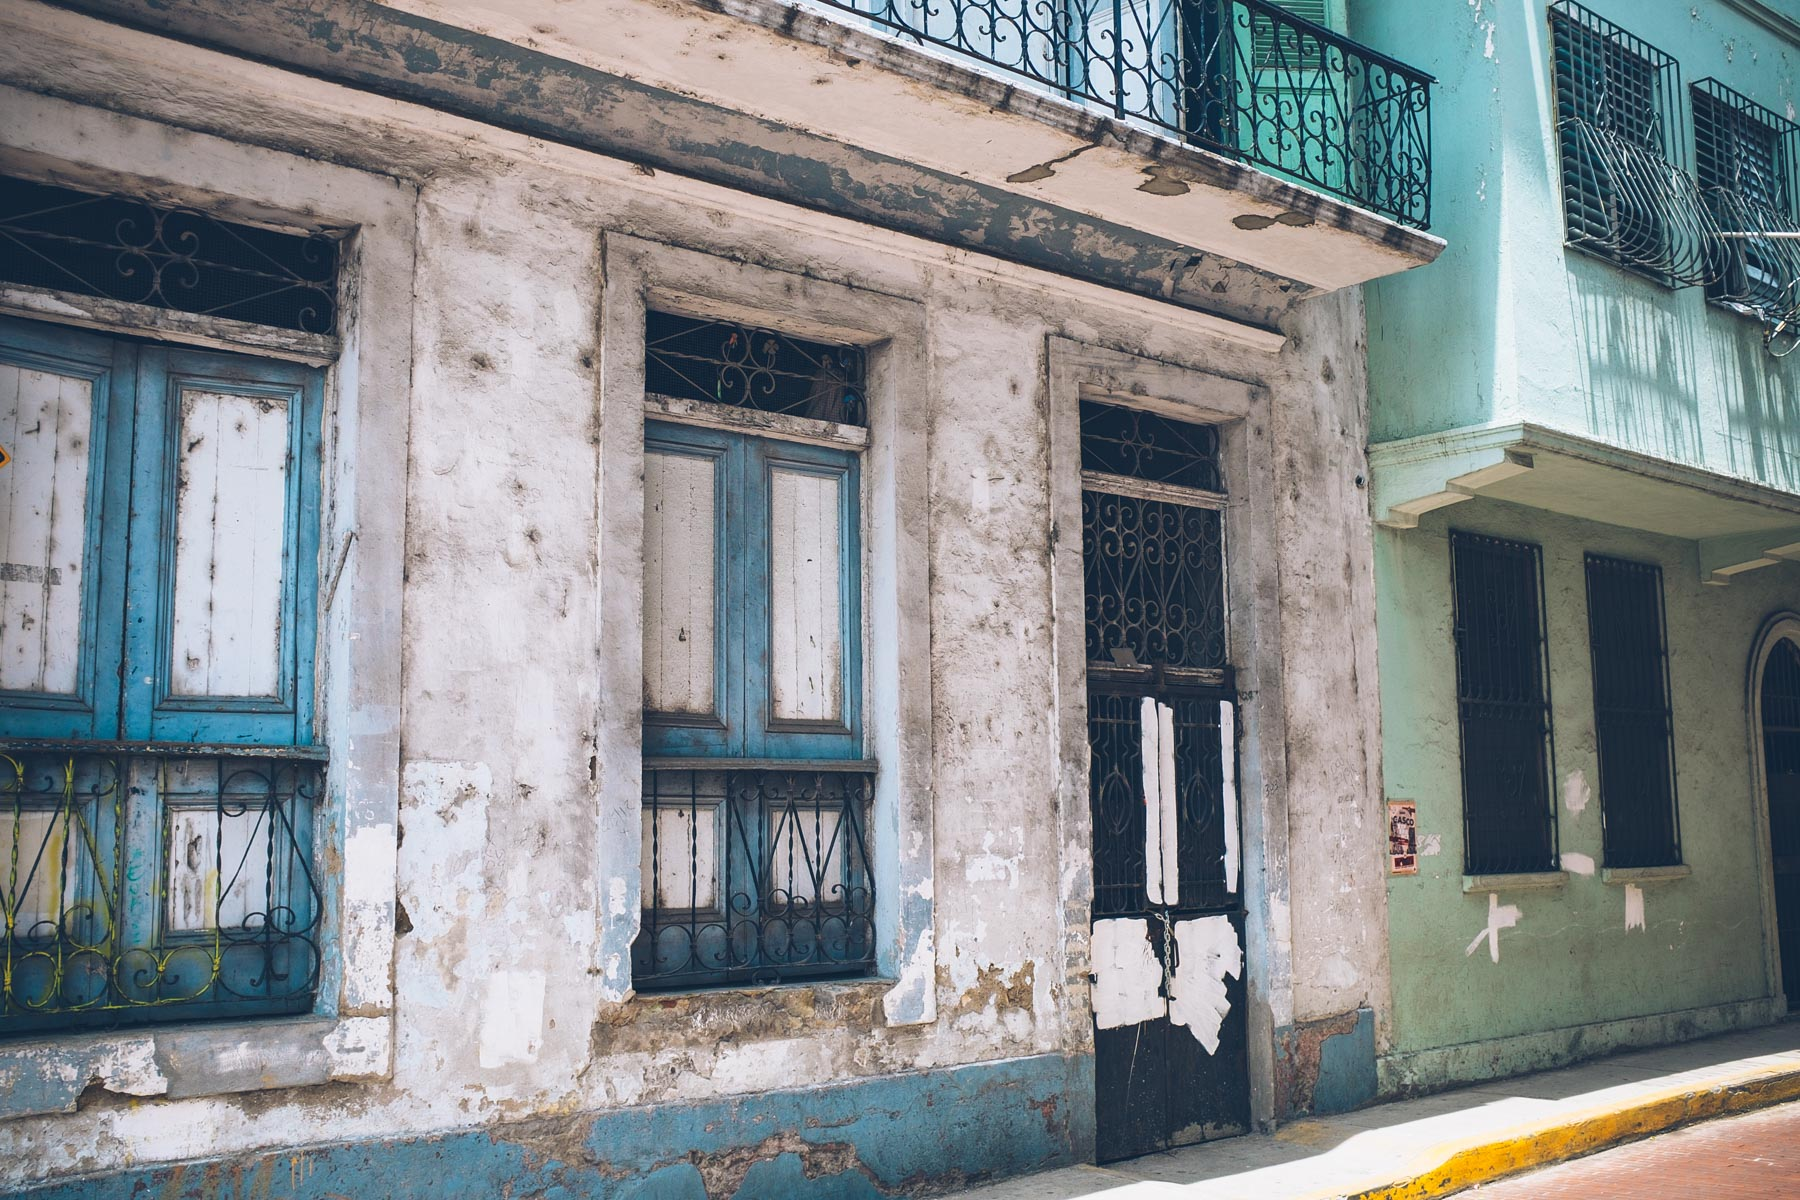 Beautiful old buildings in Casco Viejo, Panama City